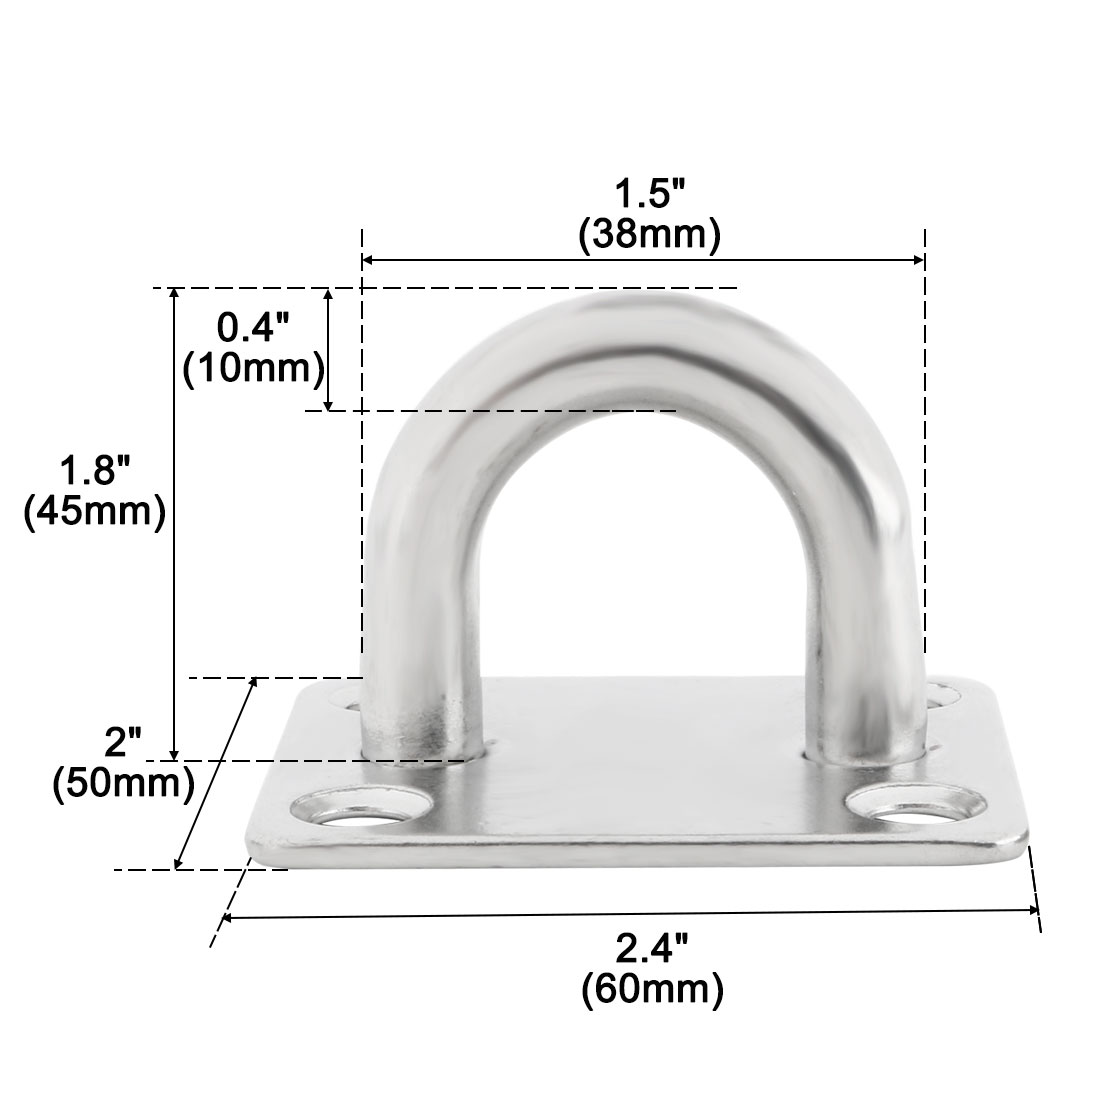 304 Stainless Steel Enclosed Ceiling Hook Hanger Silver Tone 60mm x 50mm x 40mm - image 4 of 7